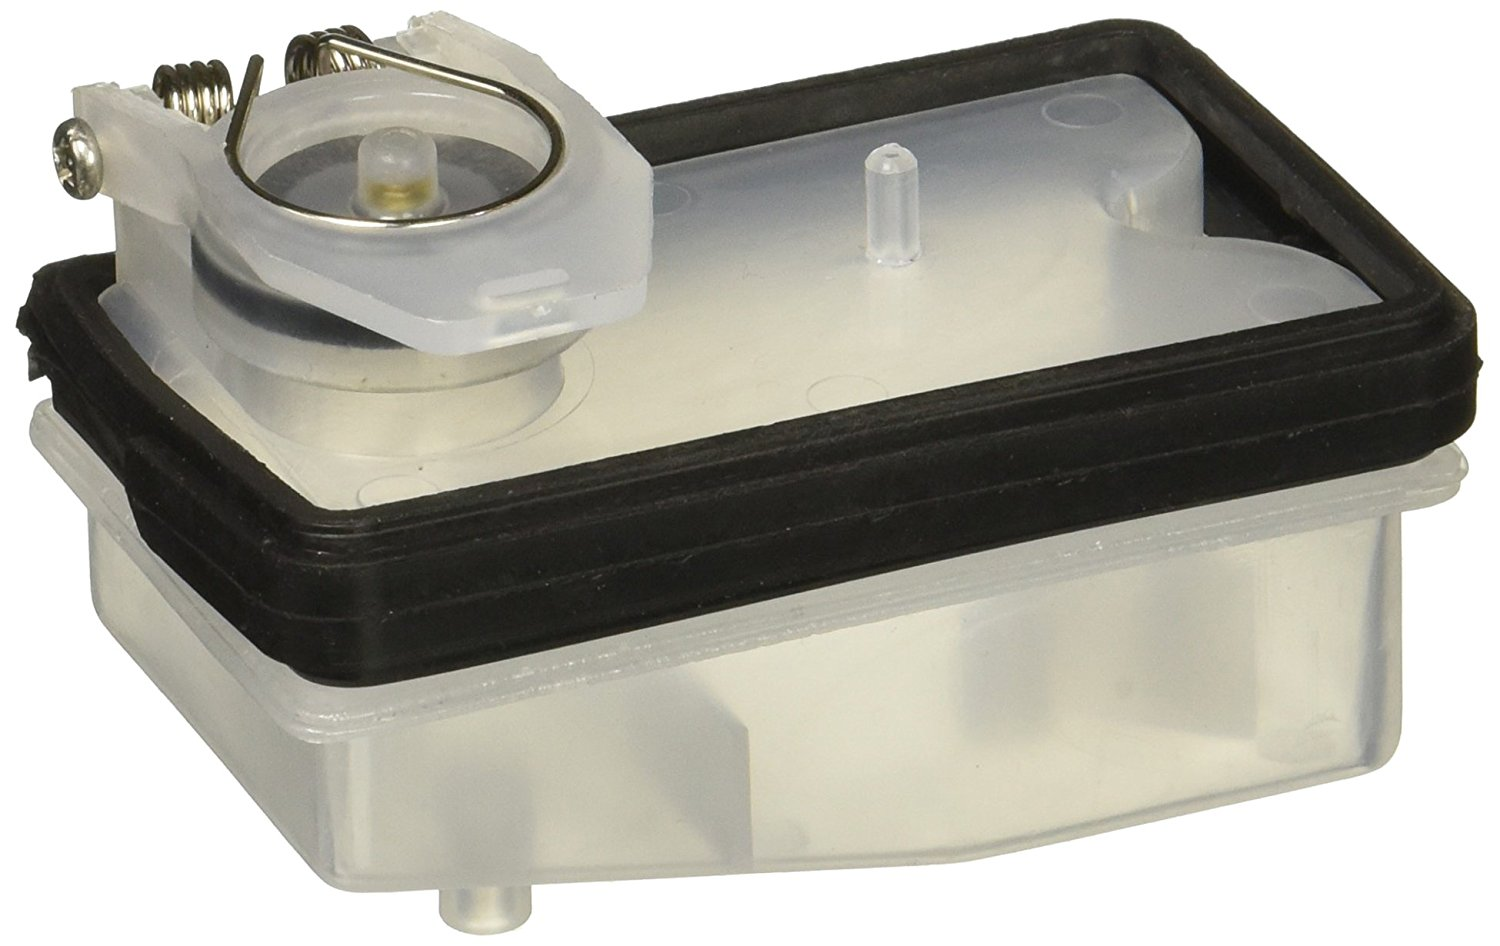 4448 75cc Fuel Tank with Vibration Cushion, The number one selling name ins RTR By Traxxas by